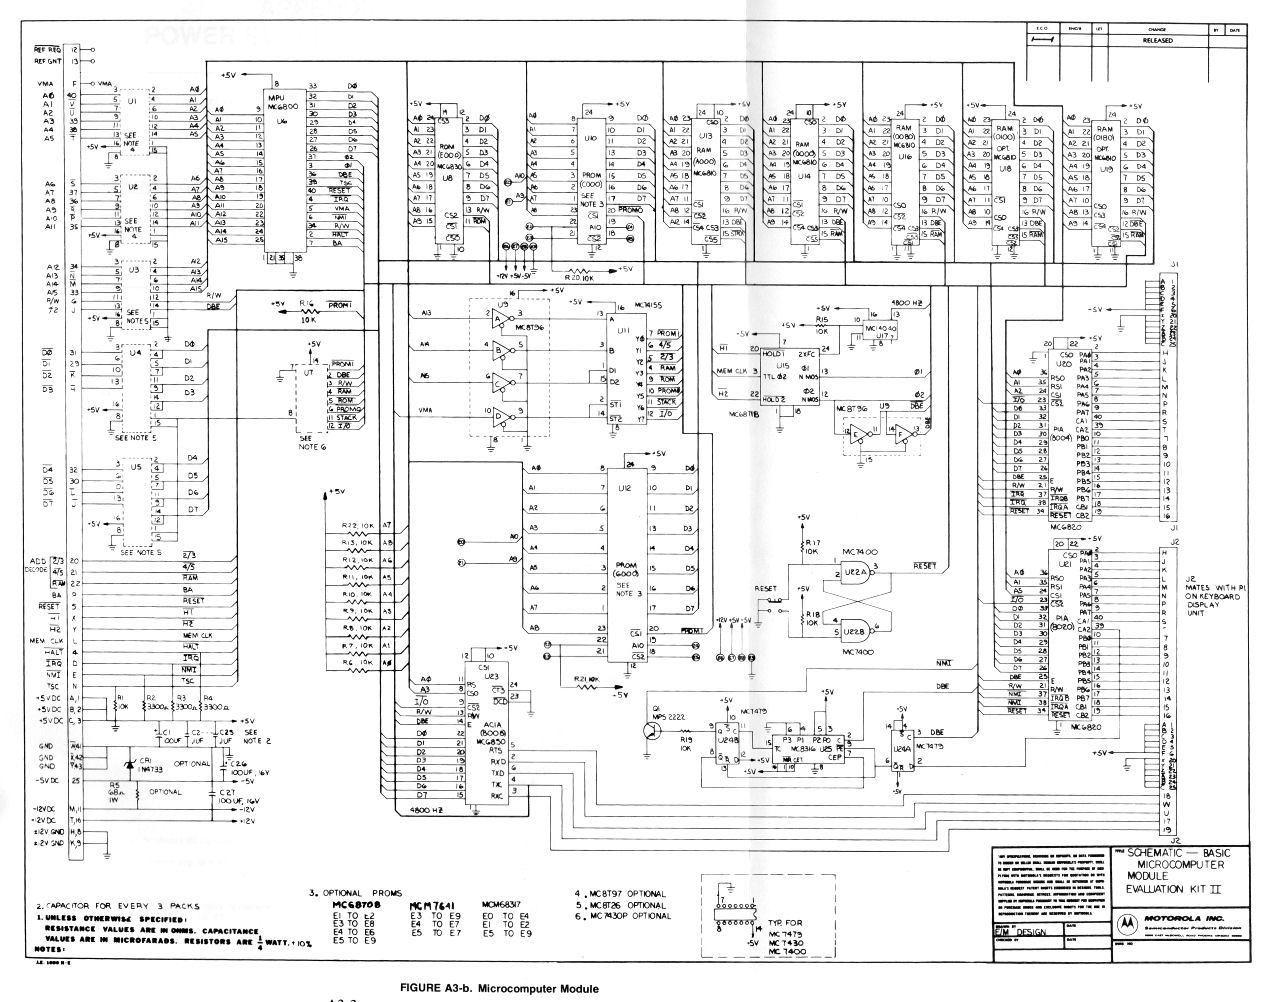 ... the schematic for the keyboard/display is here.